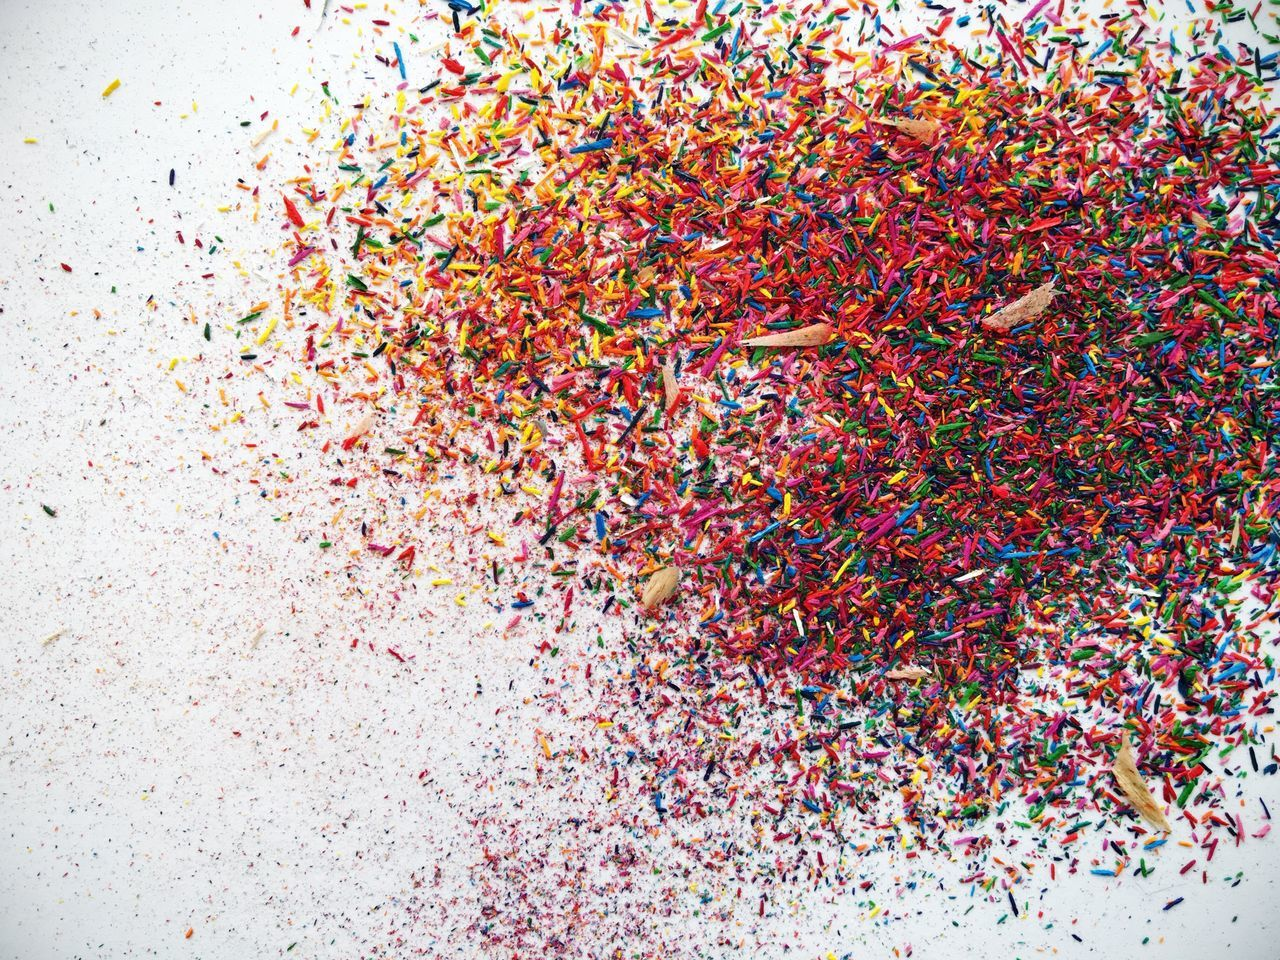 Colours Colourful Confetti Bunt Bunte Welt Anspitzer Abfall